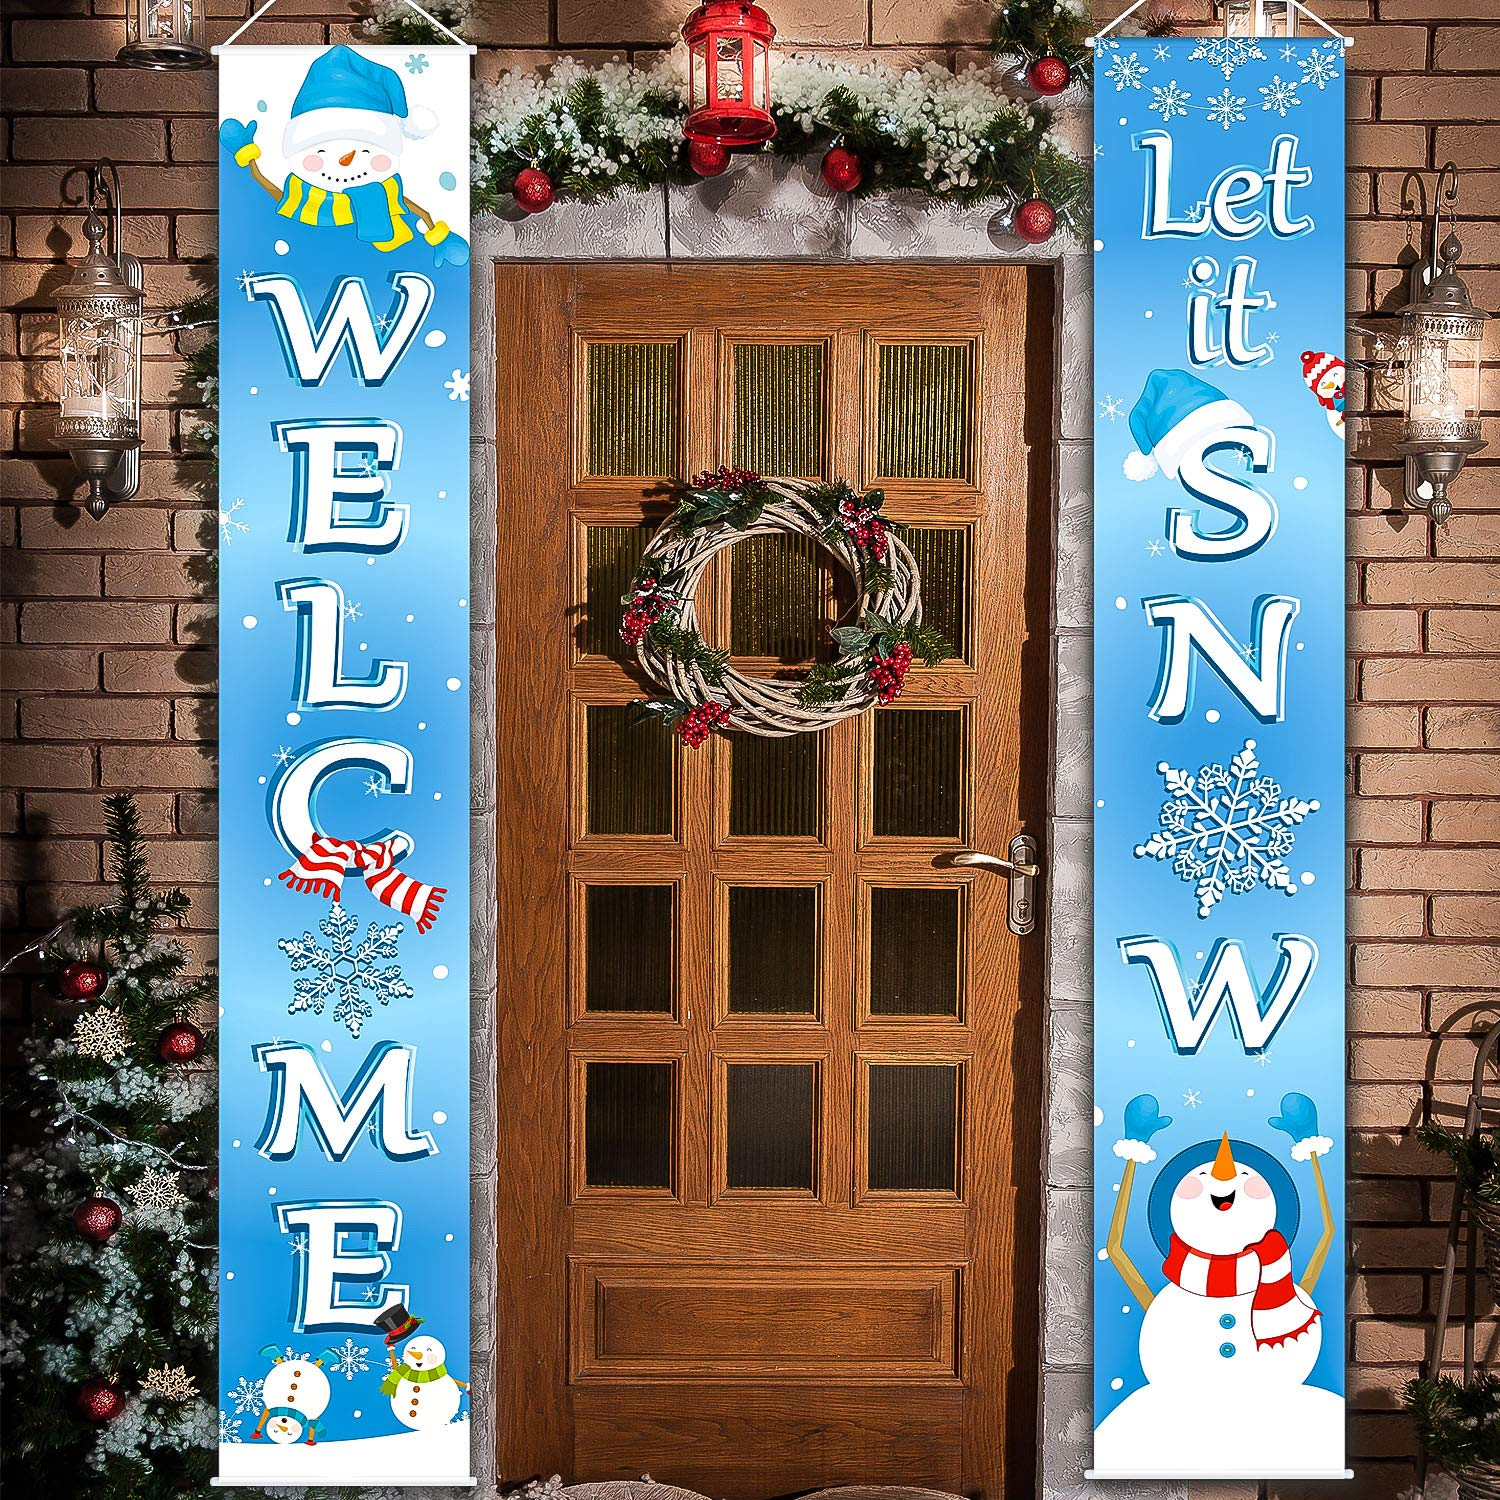 Christmas Decoration Set Christmas Porch Sign Welcome Merry Christmas Banner Christmas Hanging Garland for Frozen Winter Wonderland Party Decoration Xmas Winter Snow Party (Blue White Let It Snow, 2 P